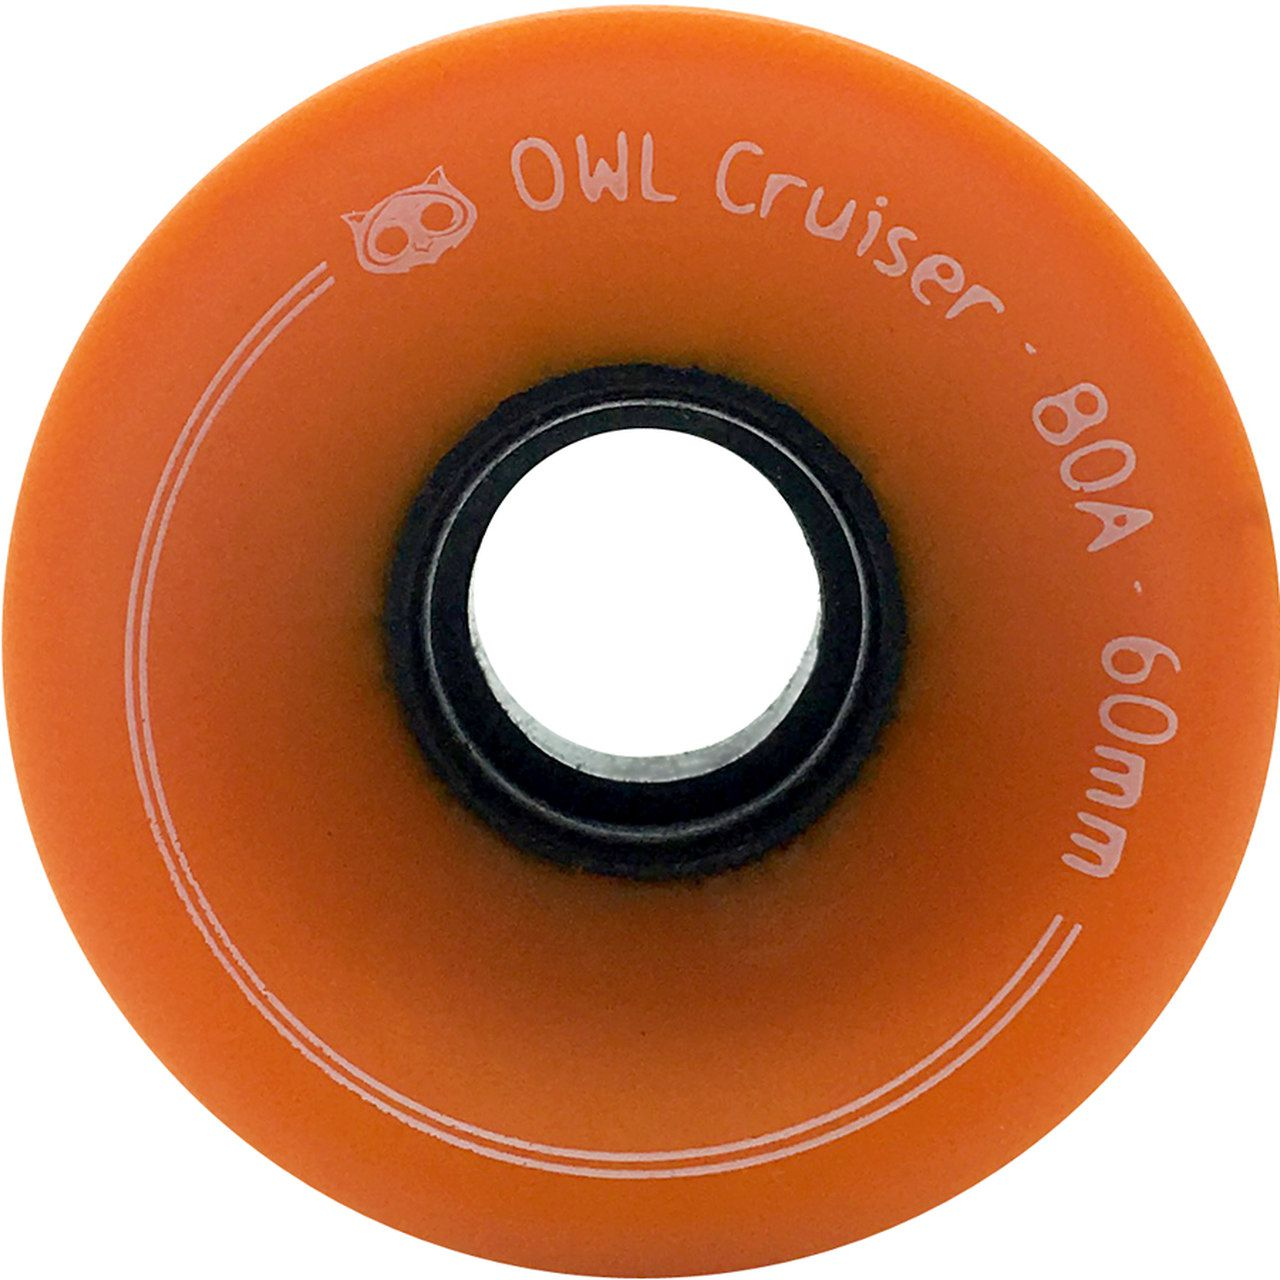 Roda Owl Sports Cruiser 60mm